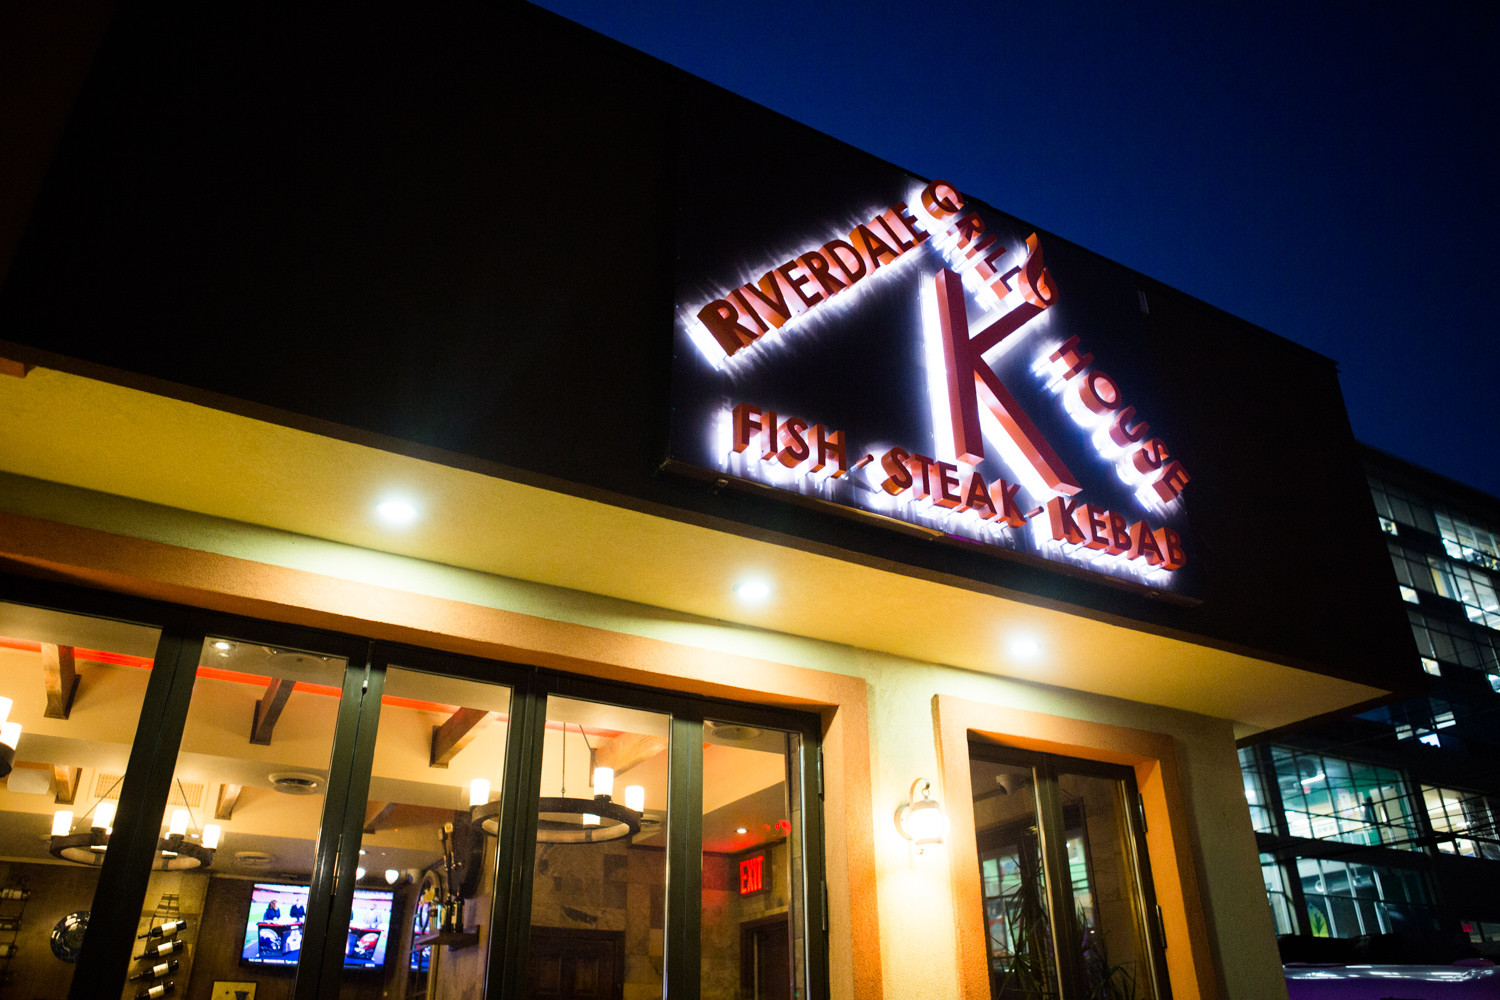 Riverdale K Grill House — known for its fine steaks, juicy burgers, well-seasoned kebabs, and even an ample sushi menu — is on the market. Dmitriy Berezovskiy, the restaurant's current owner, struggled with requirements to keep the establishment glatt kosher.